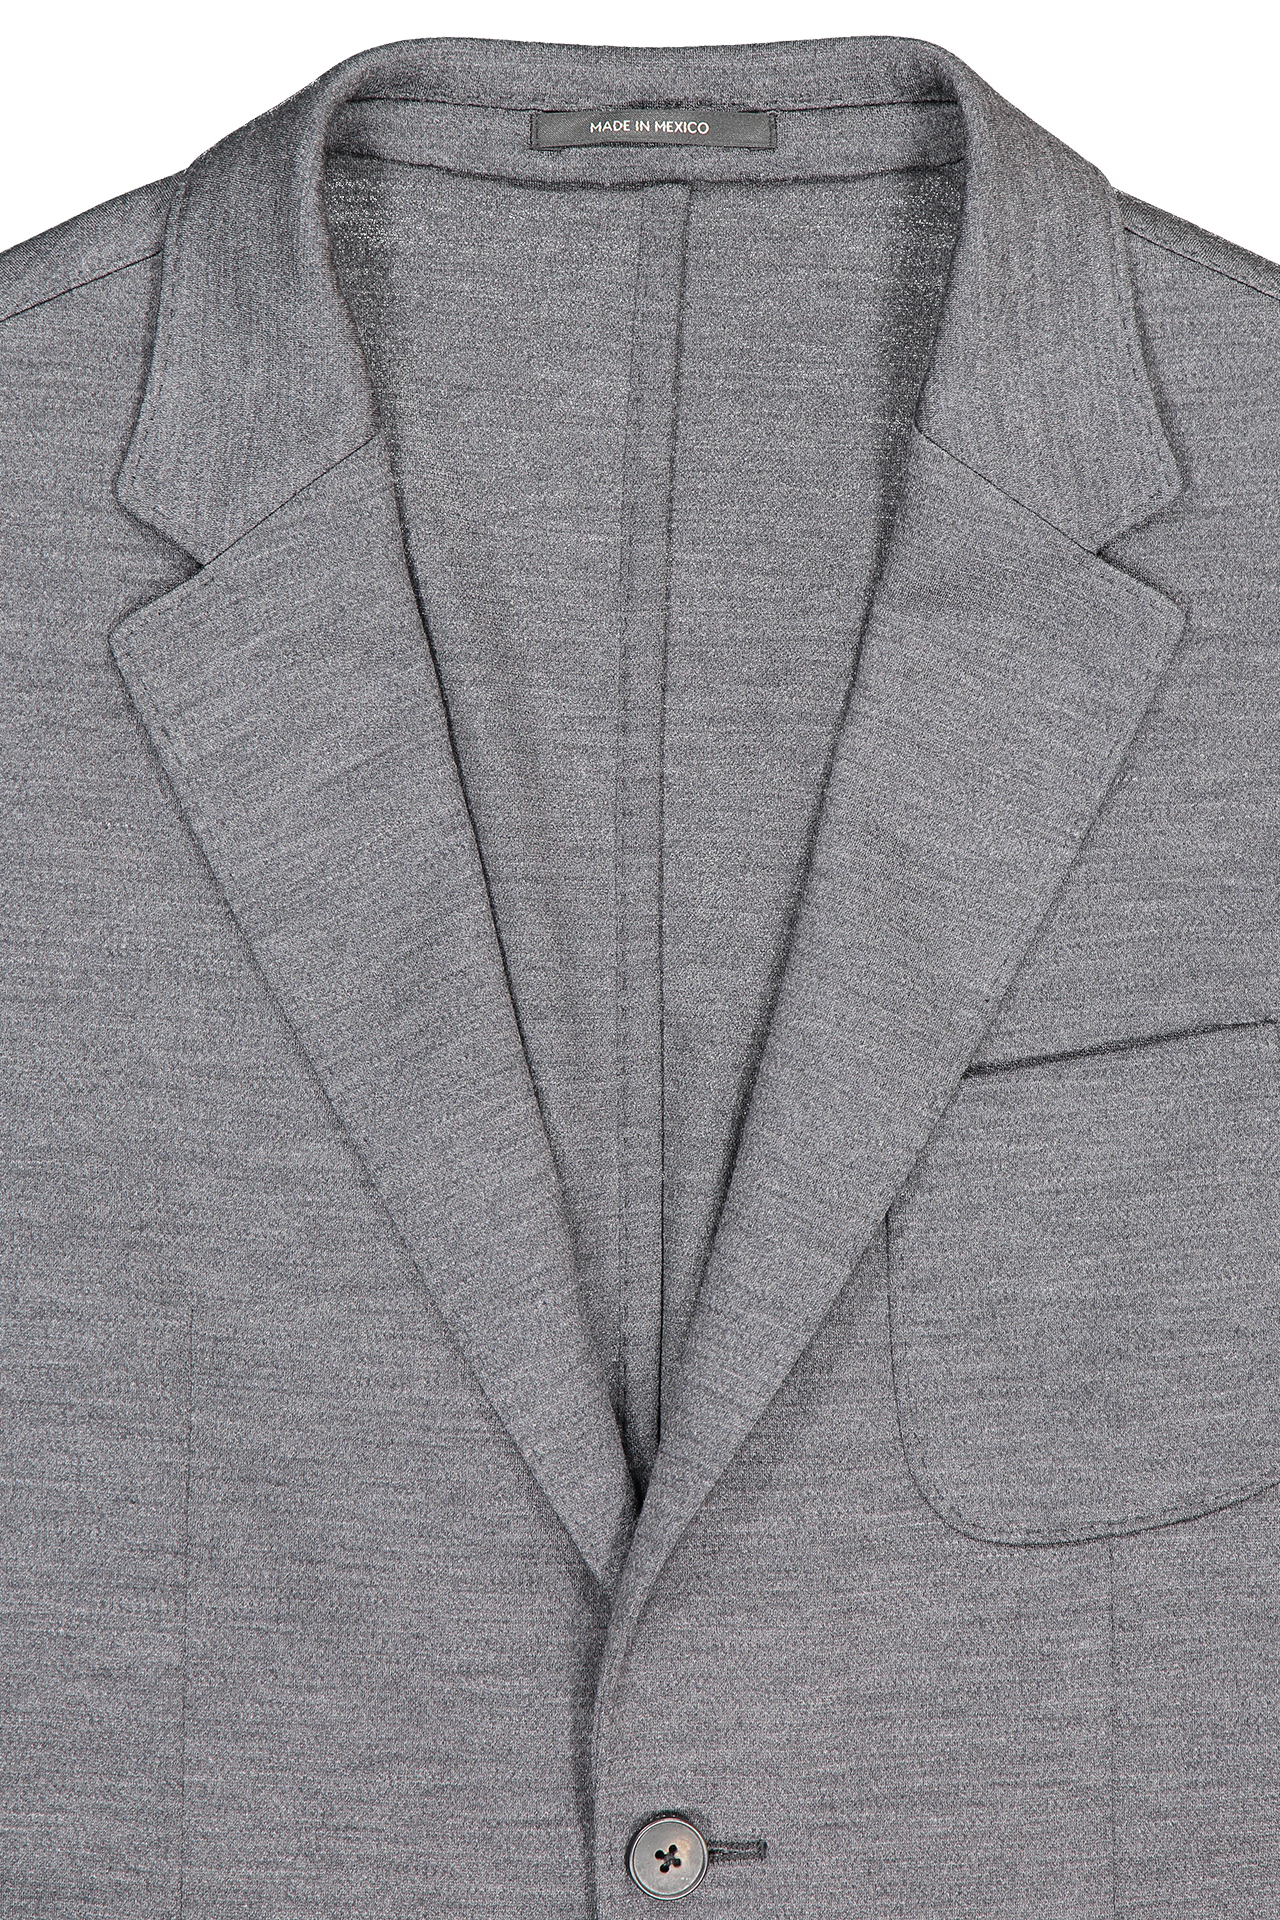 Front collar and lapel detail image of Z Zegna Men's Techmerino Wash & Go Blazer Grey